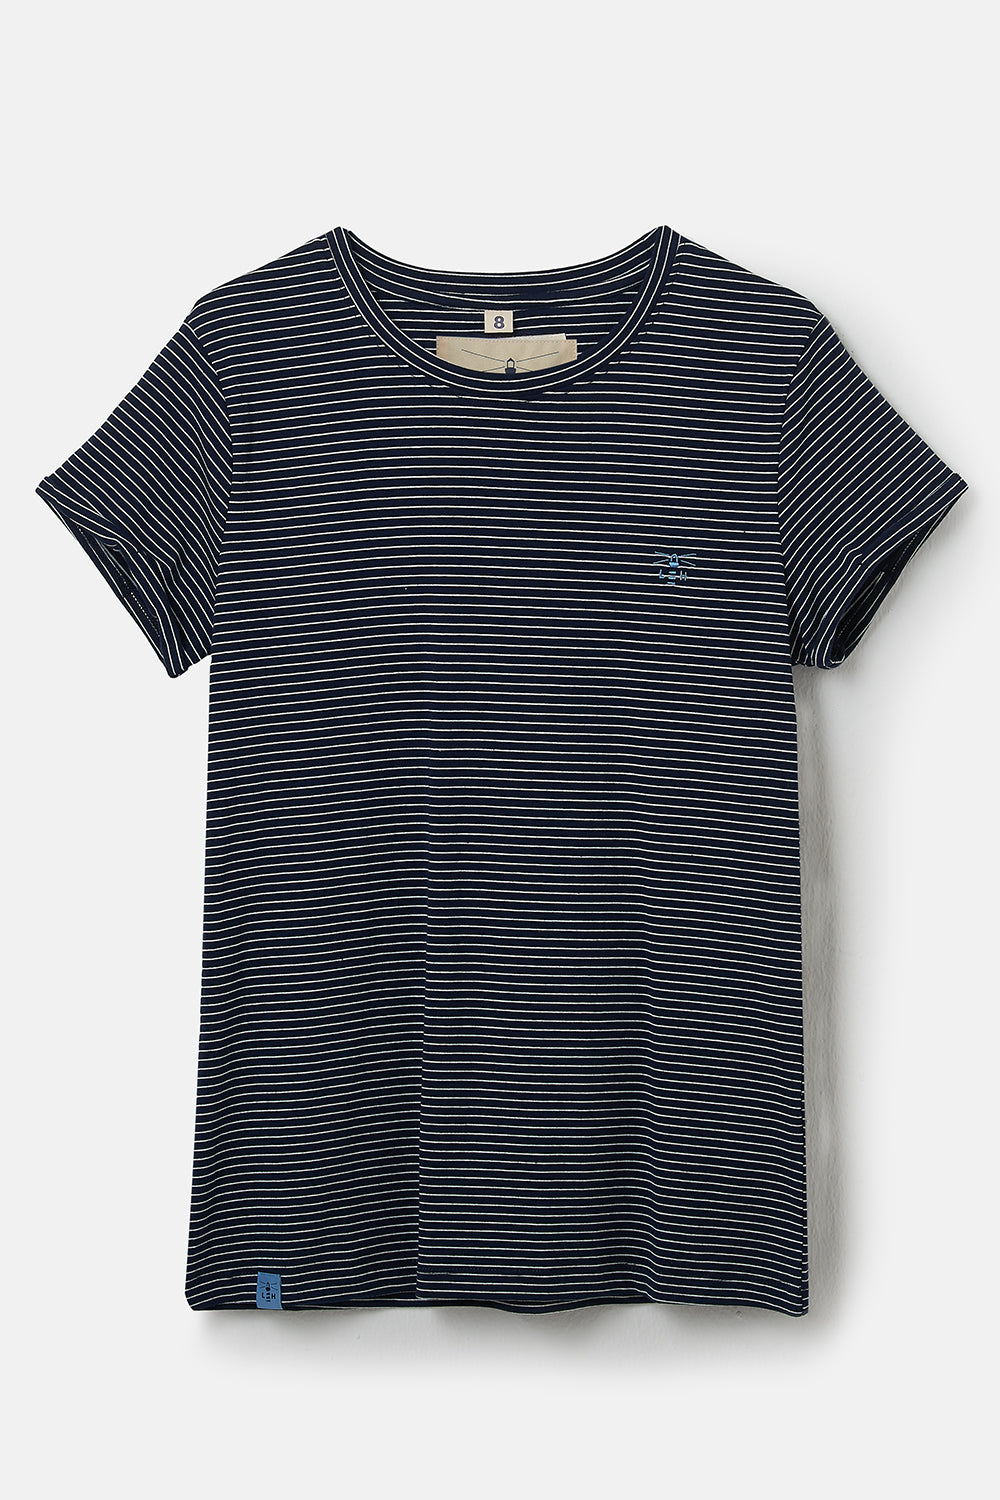 Lighthouse Seashore Women's T-Shirt Midnight Stripe